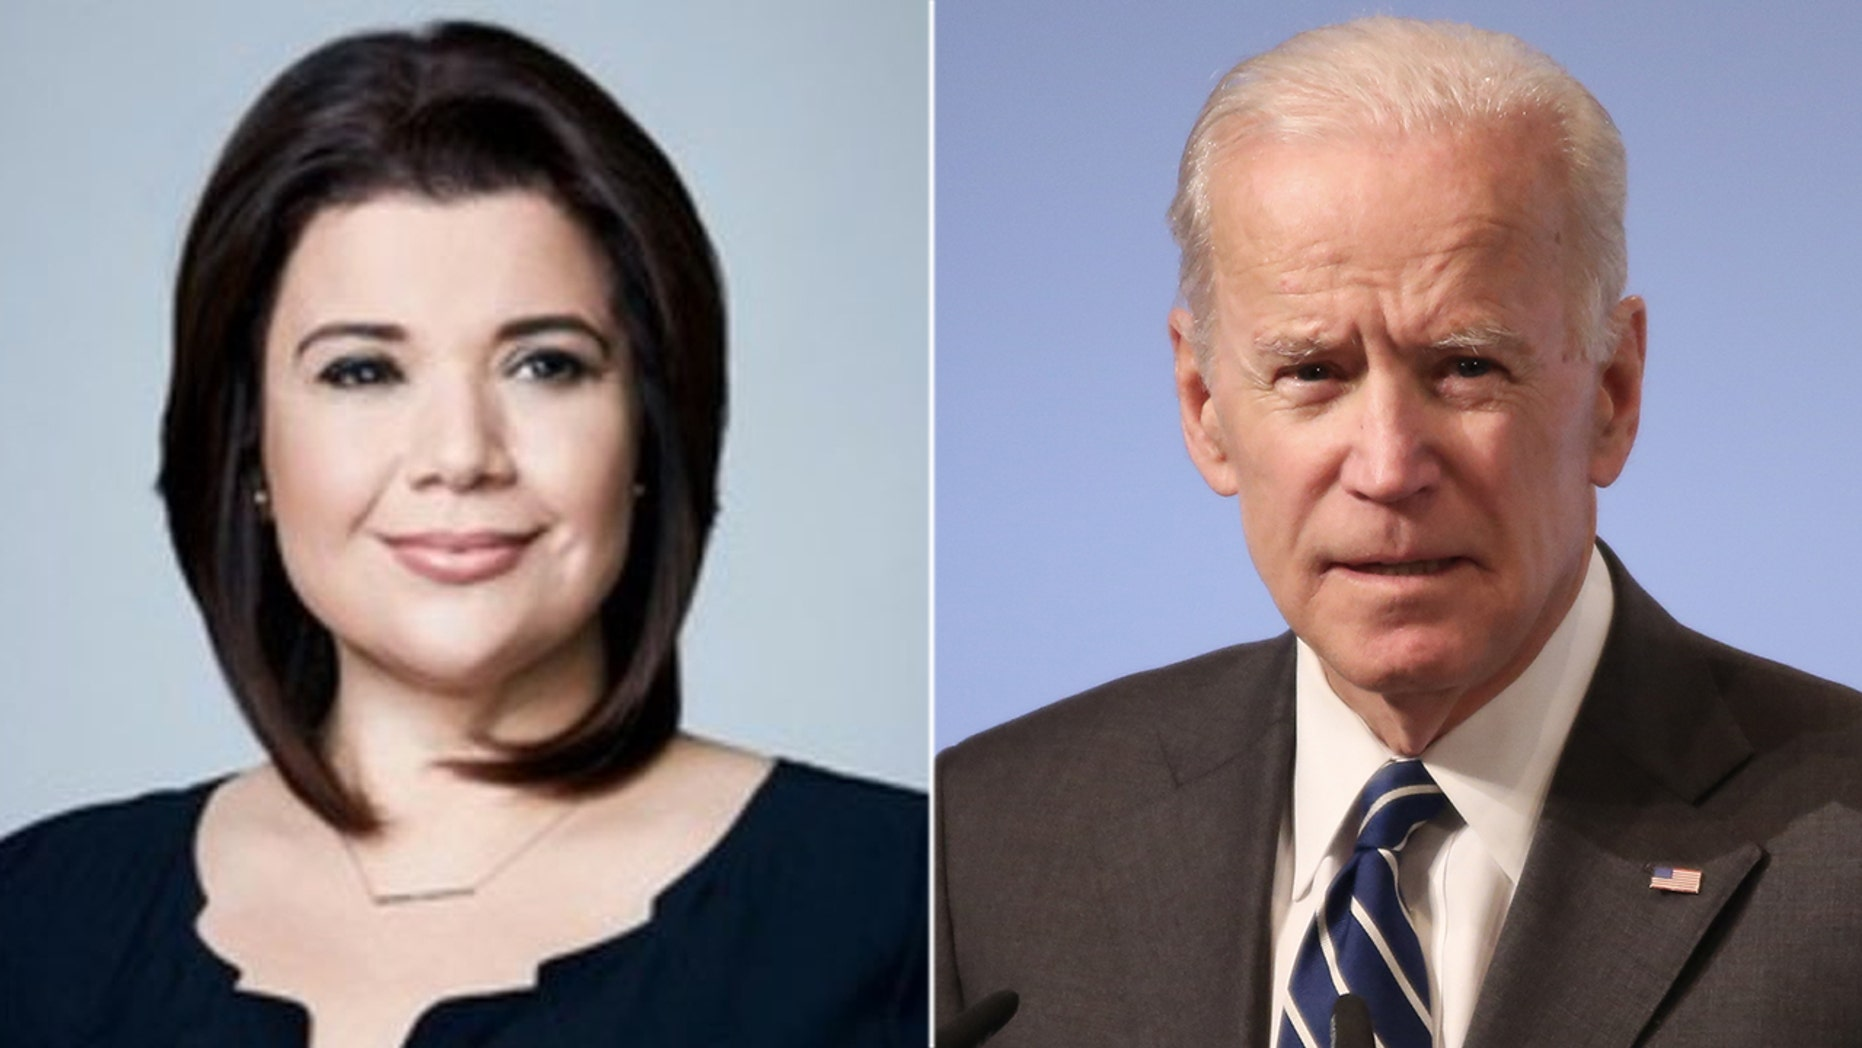 Political commentator Ana Navarro has made the argument that 2020 Democratic hopeful Joe Biden needs to up the ante if he wants to beat Donald Trump in next year's presidential election